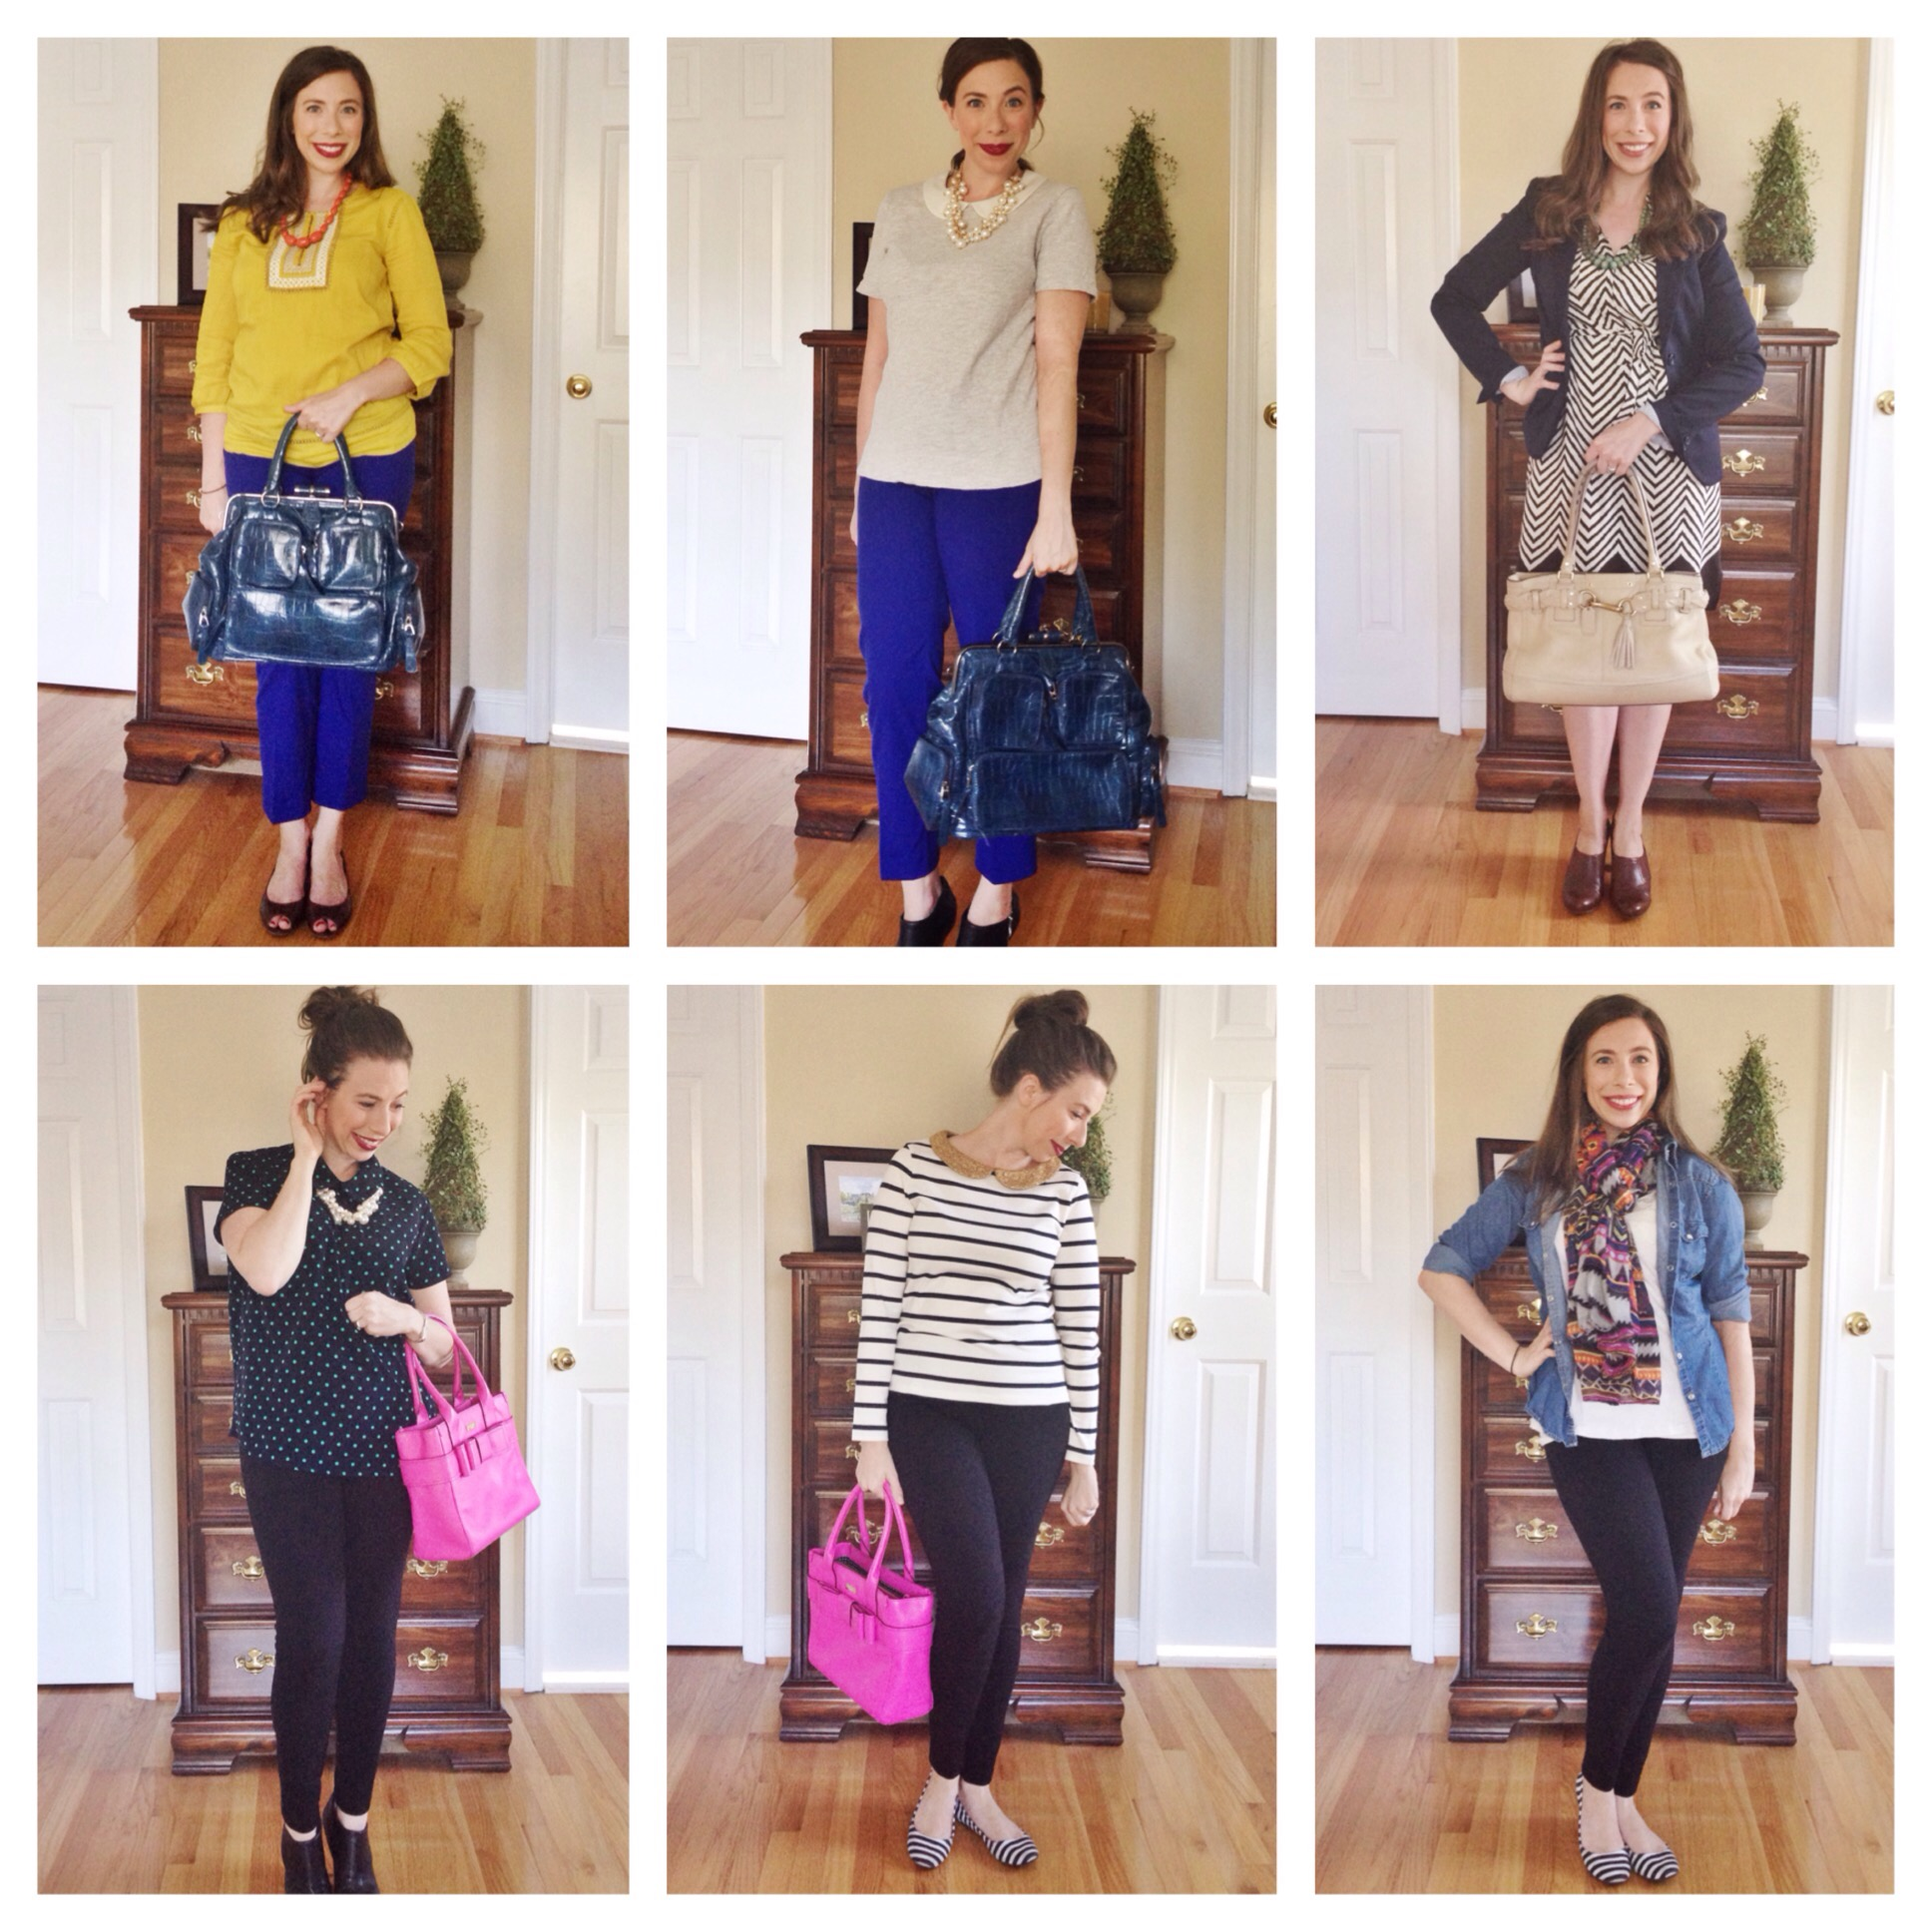 Recap of first 6 outfits in 30 Outfits 30 Days Challenge on Cup of Tea